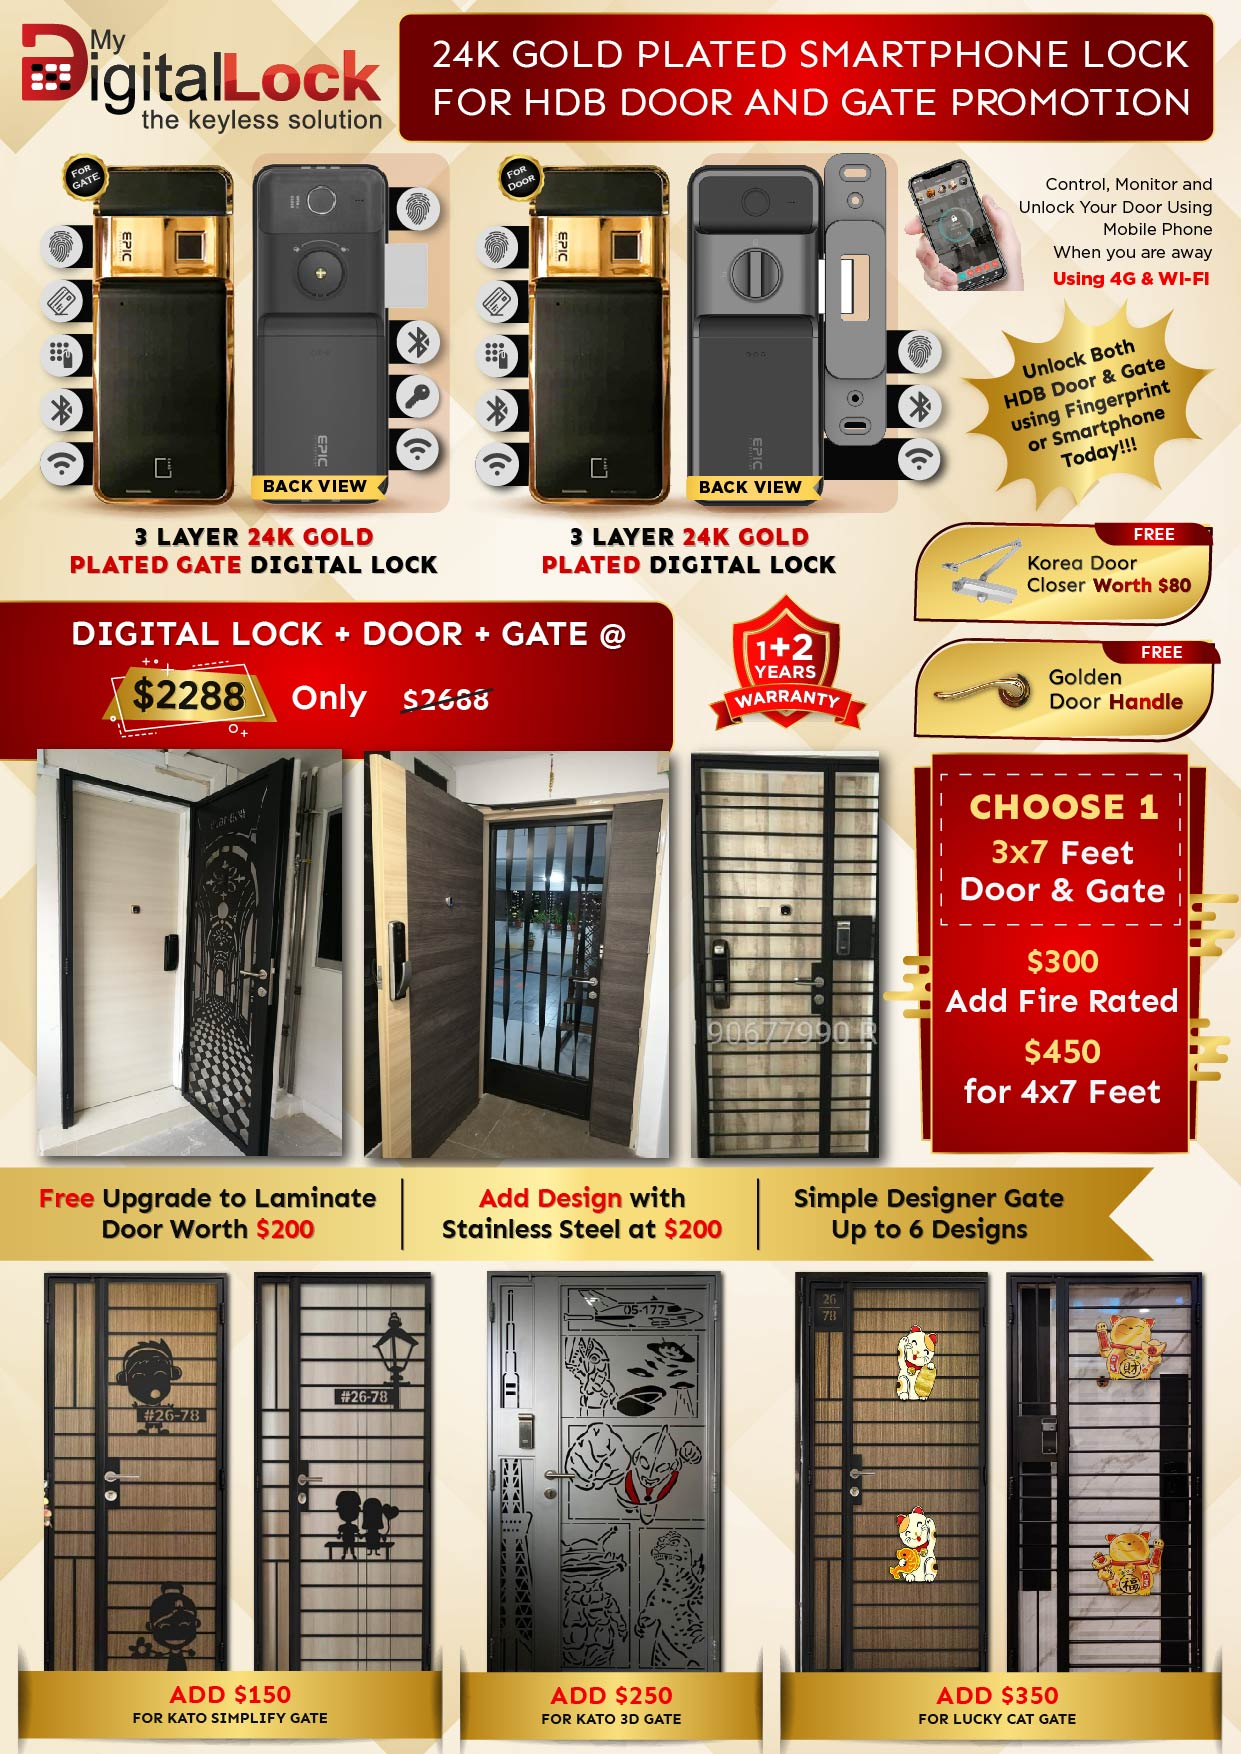 Golden-Rat-Year-HDB-Door-and-Gate-Promotion-with-24K-Gold-Plated-Digital-Lock